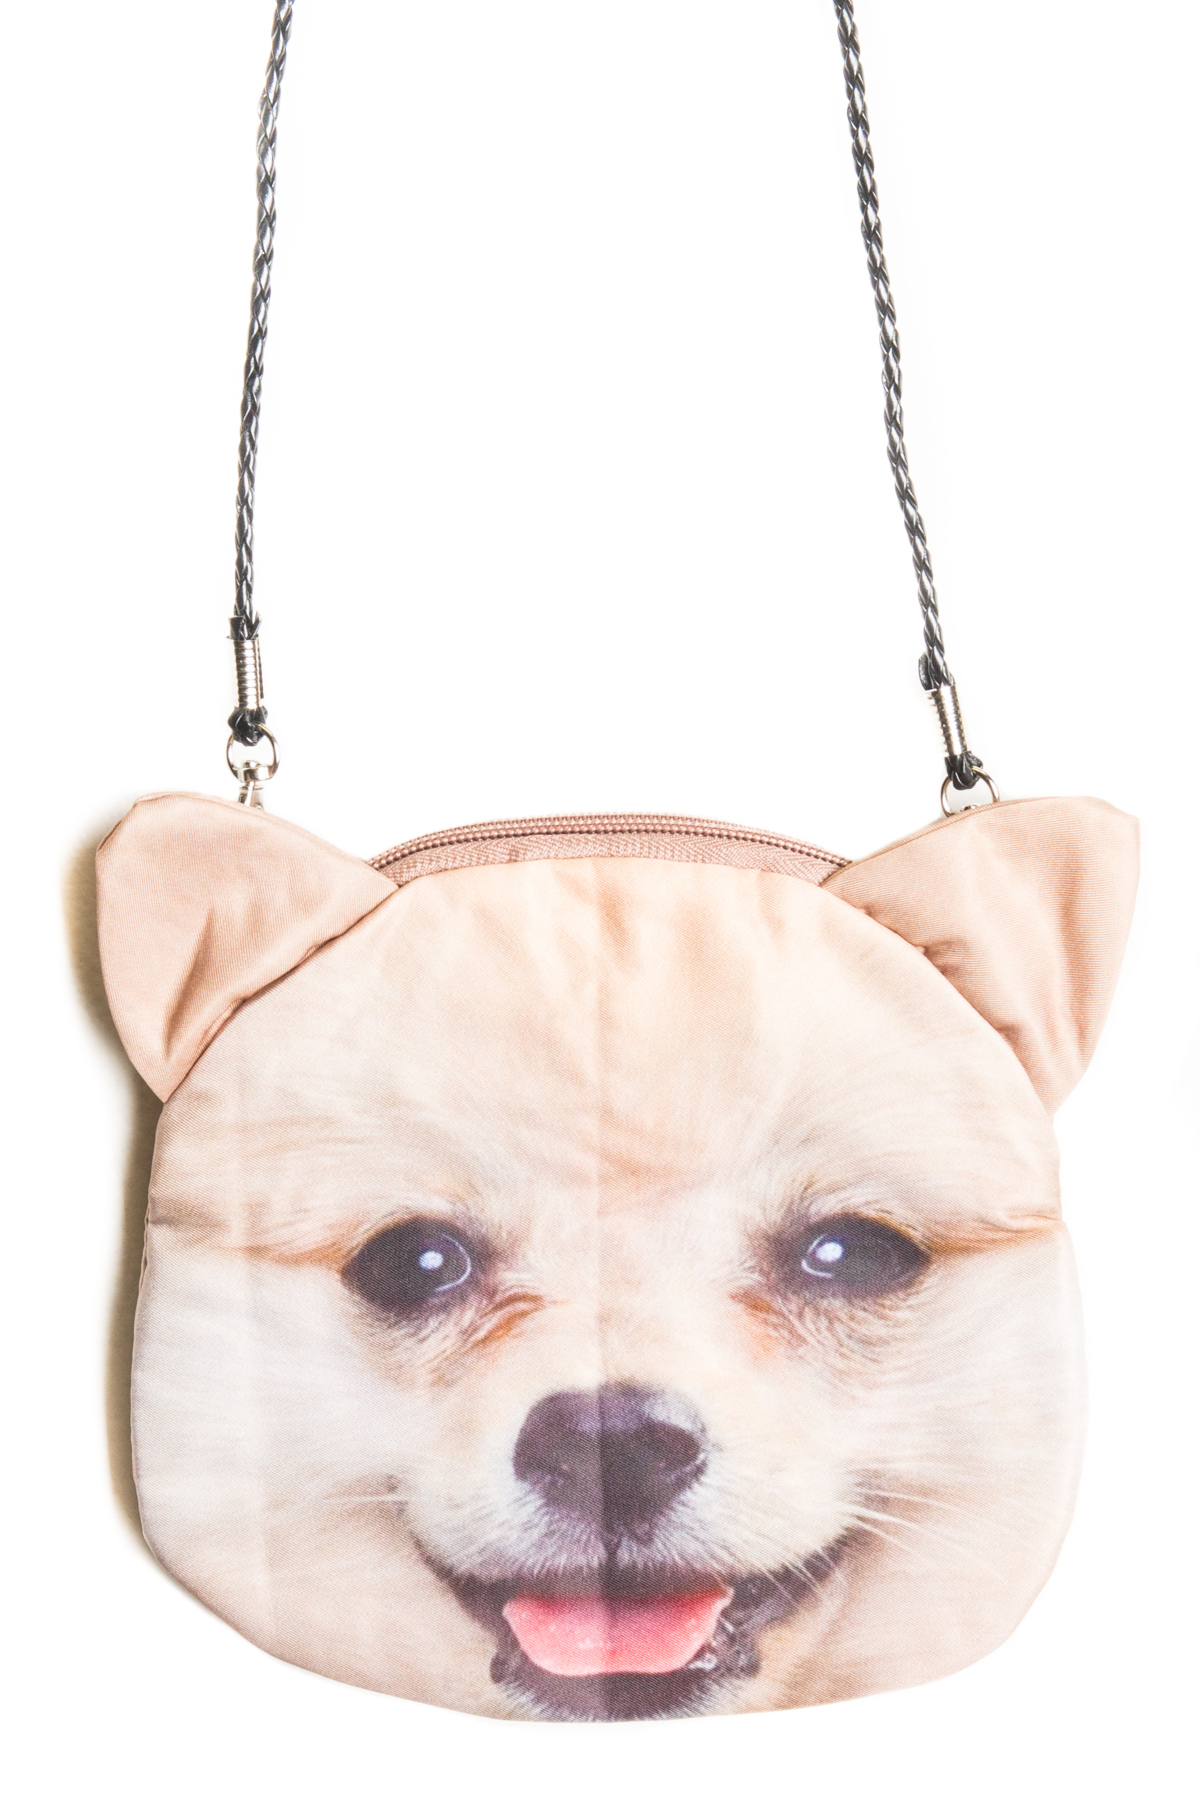 dog purse chiwawa